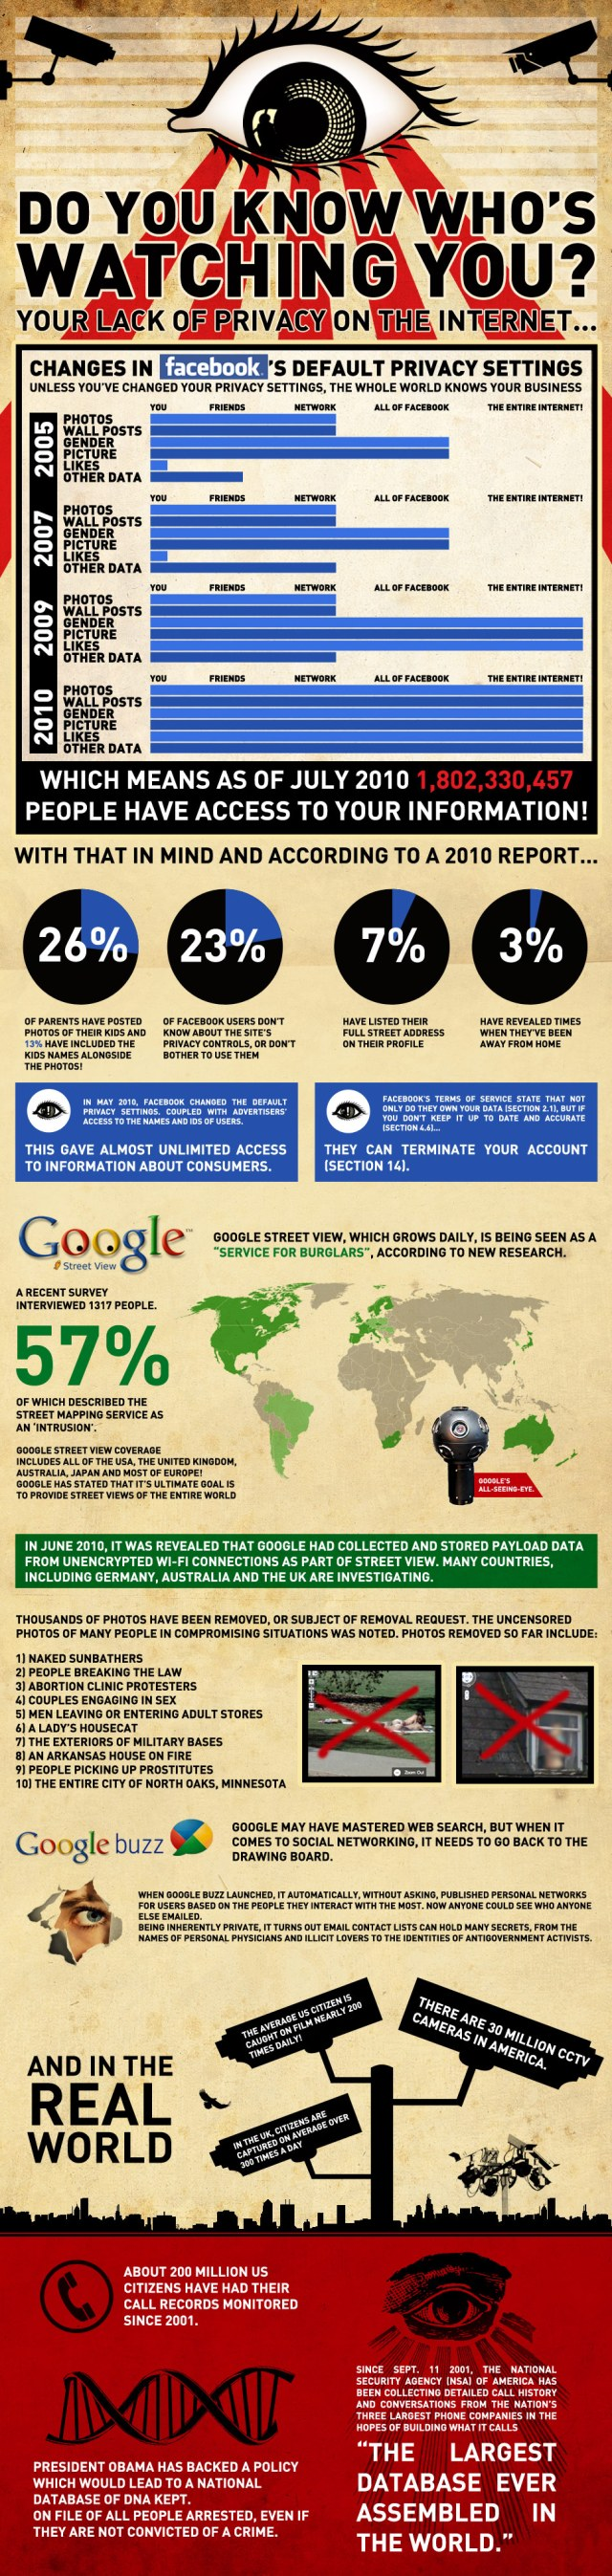 mediabistro-google-privacy-infographic